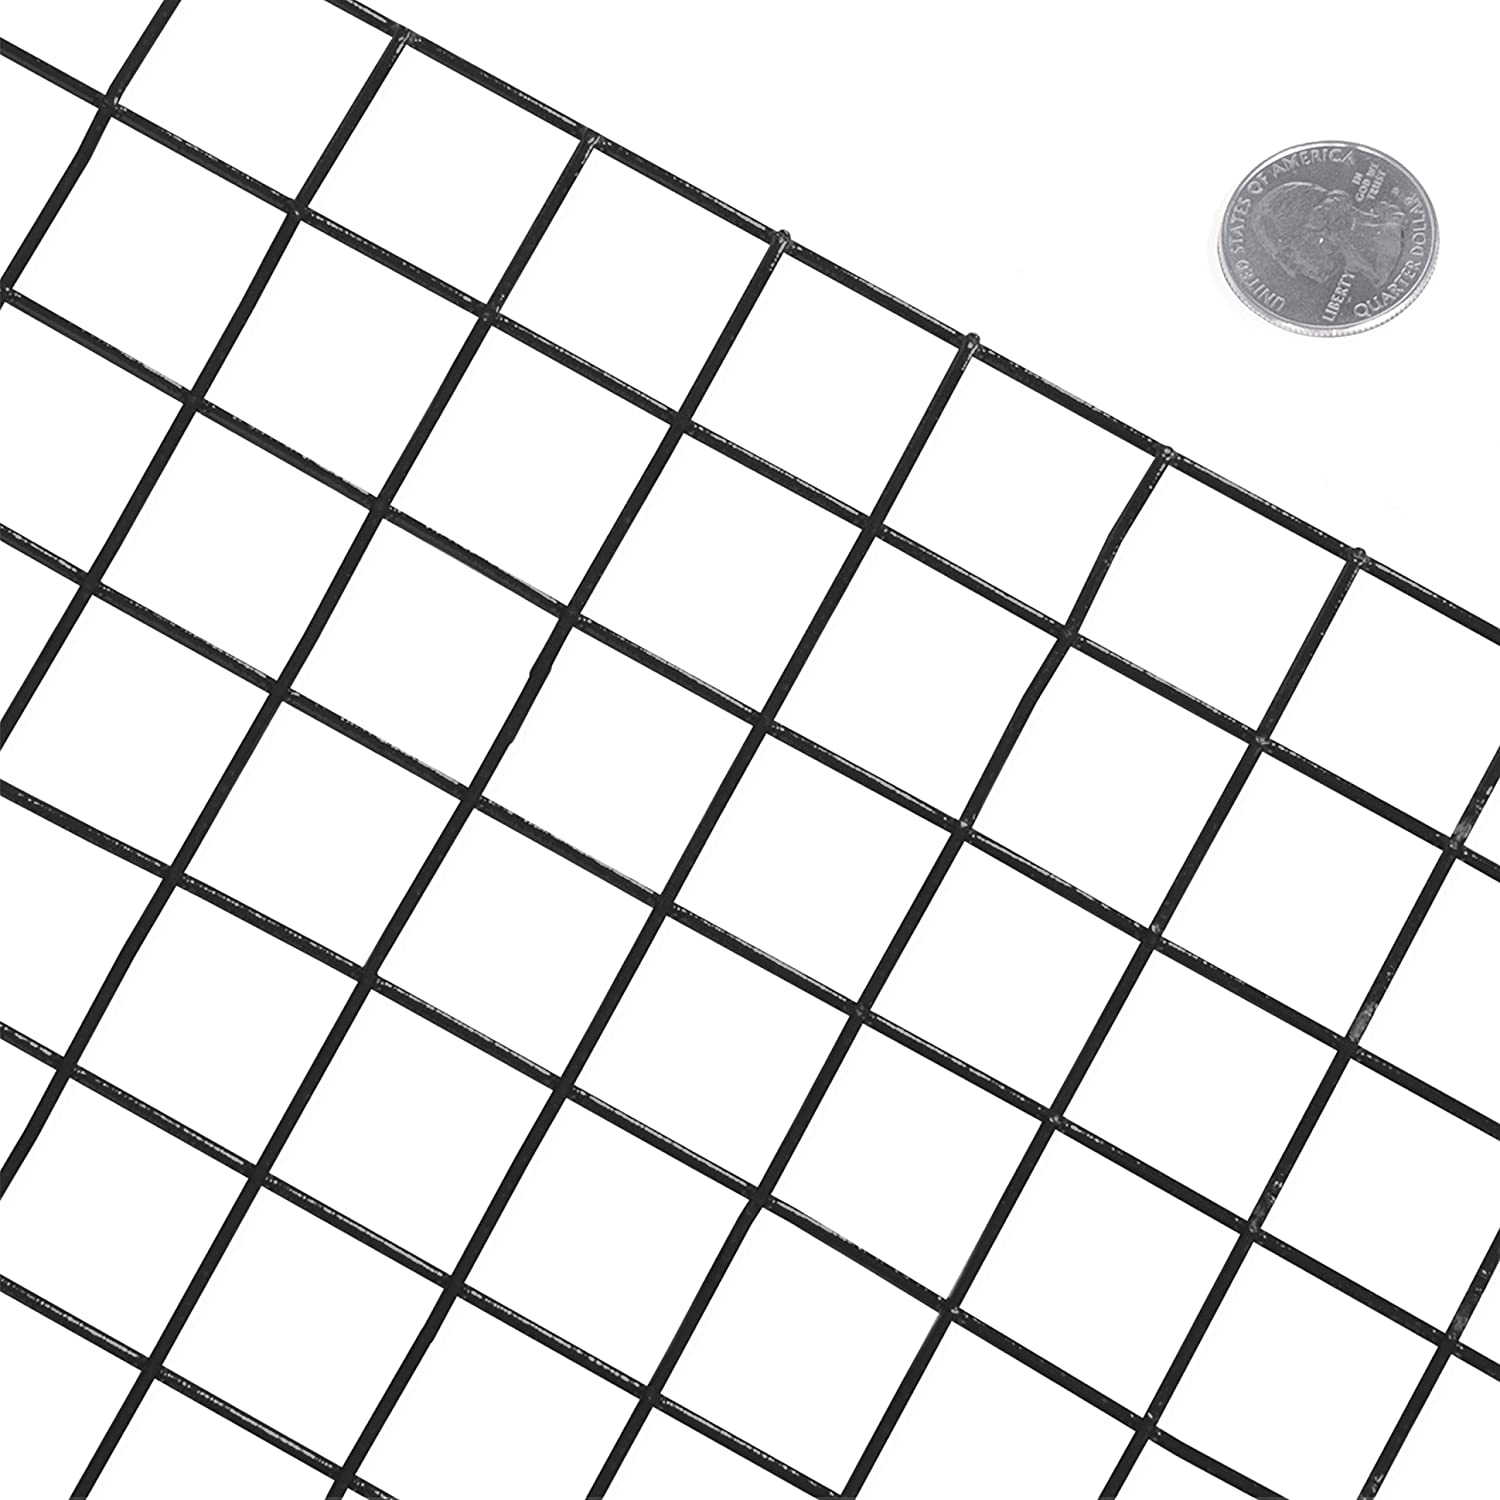 3 ft. x 50 ft. Fencer Wire 16 Gauge Black Vinyl Coated Welded Wire Mesh Size 1 inch by 1 inch